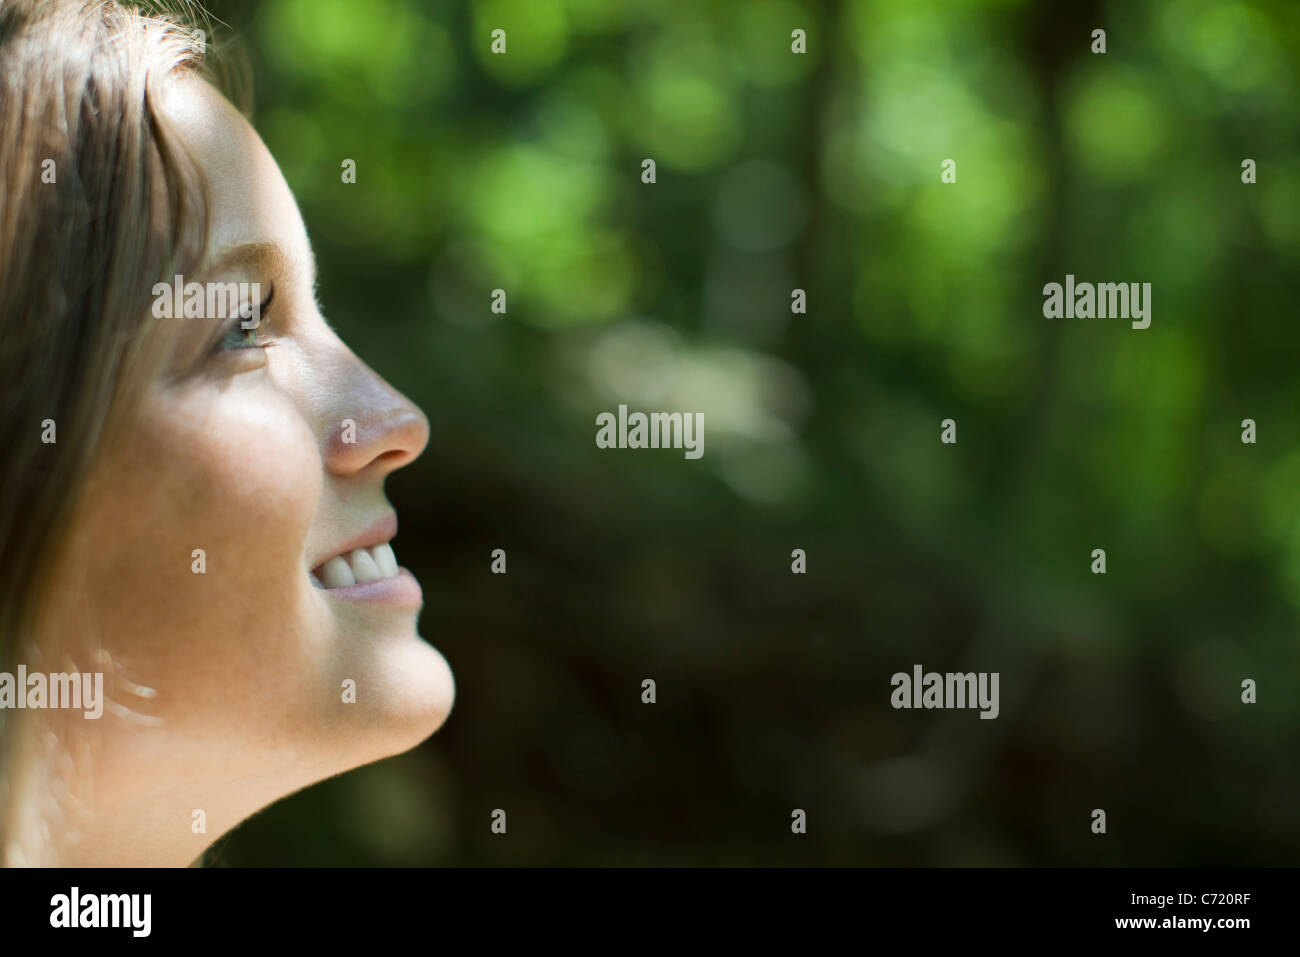 Young woman in nature, side view - Stock Image